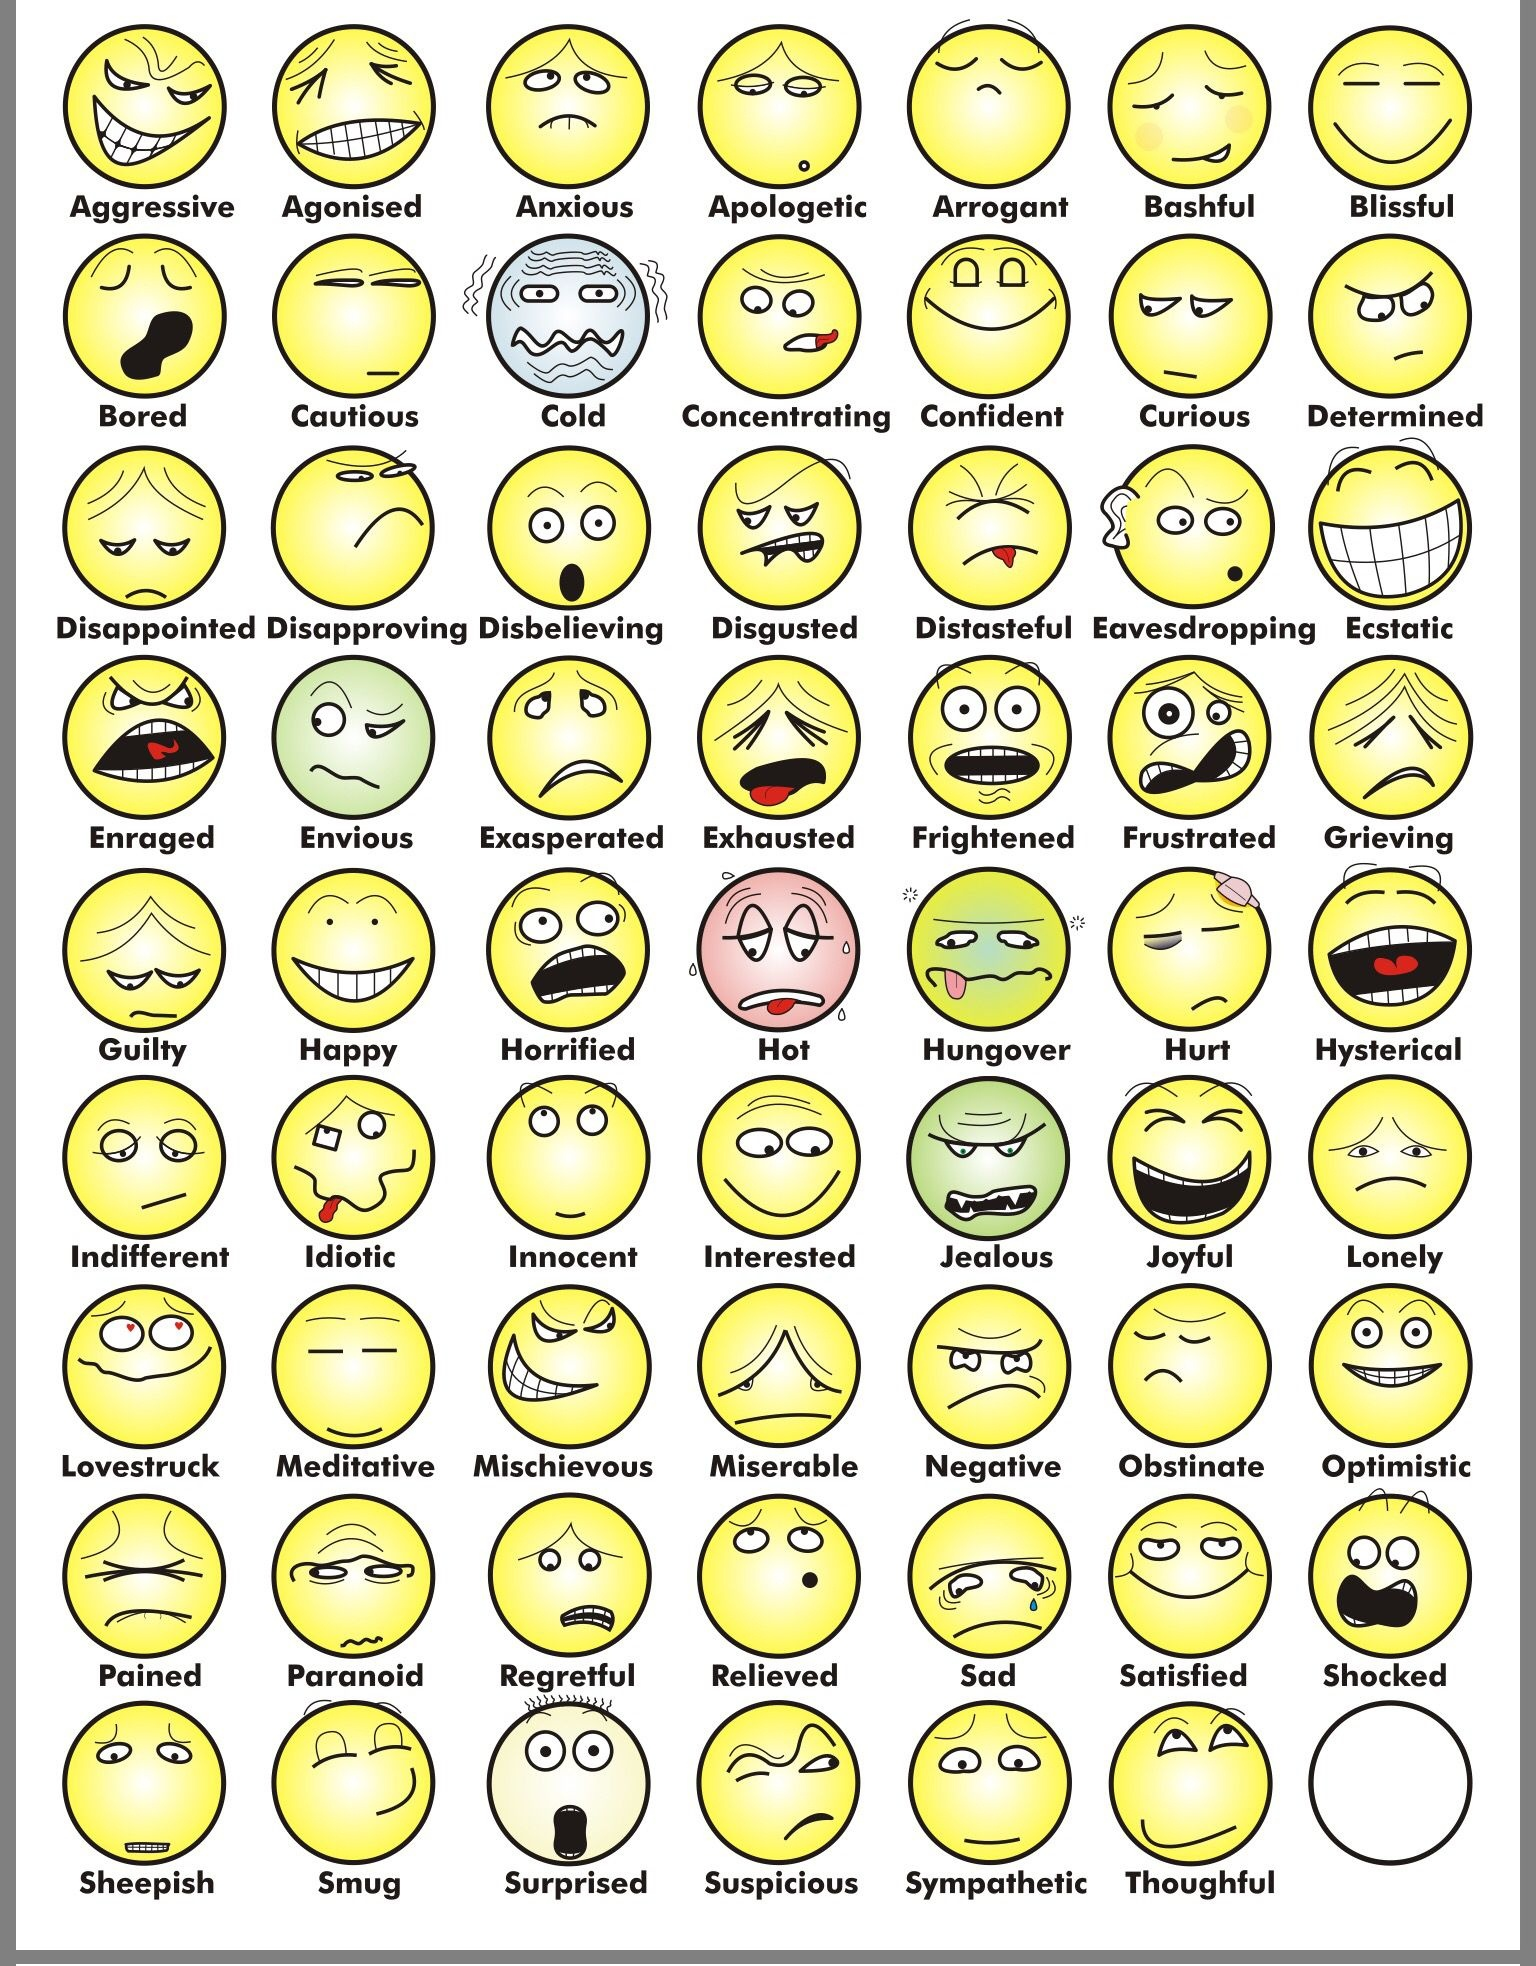 Feelings Emotions Faces - Free Printable | Video Production Study - Free Printable Pictures Of Emotions